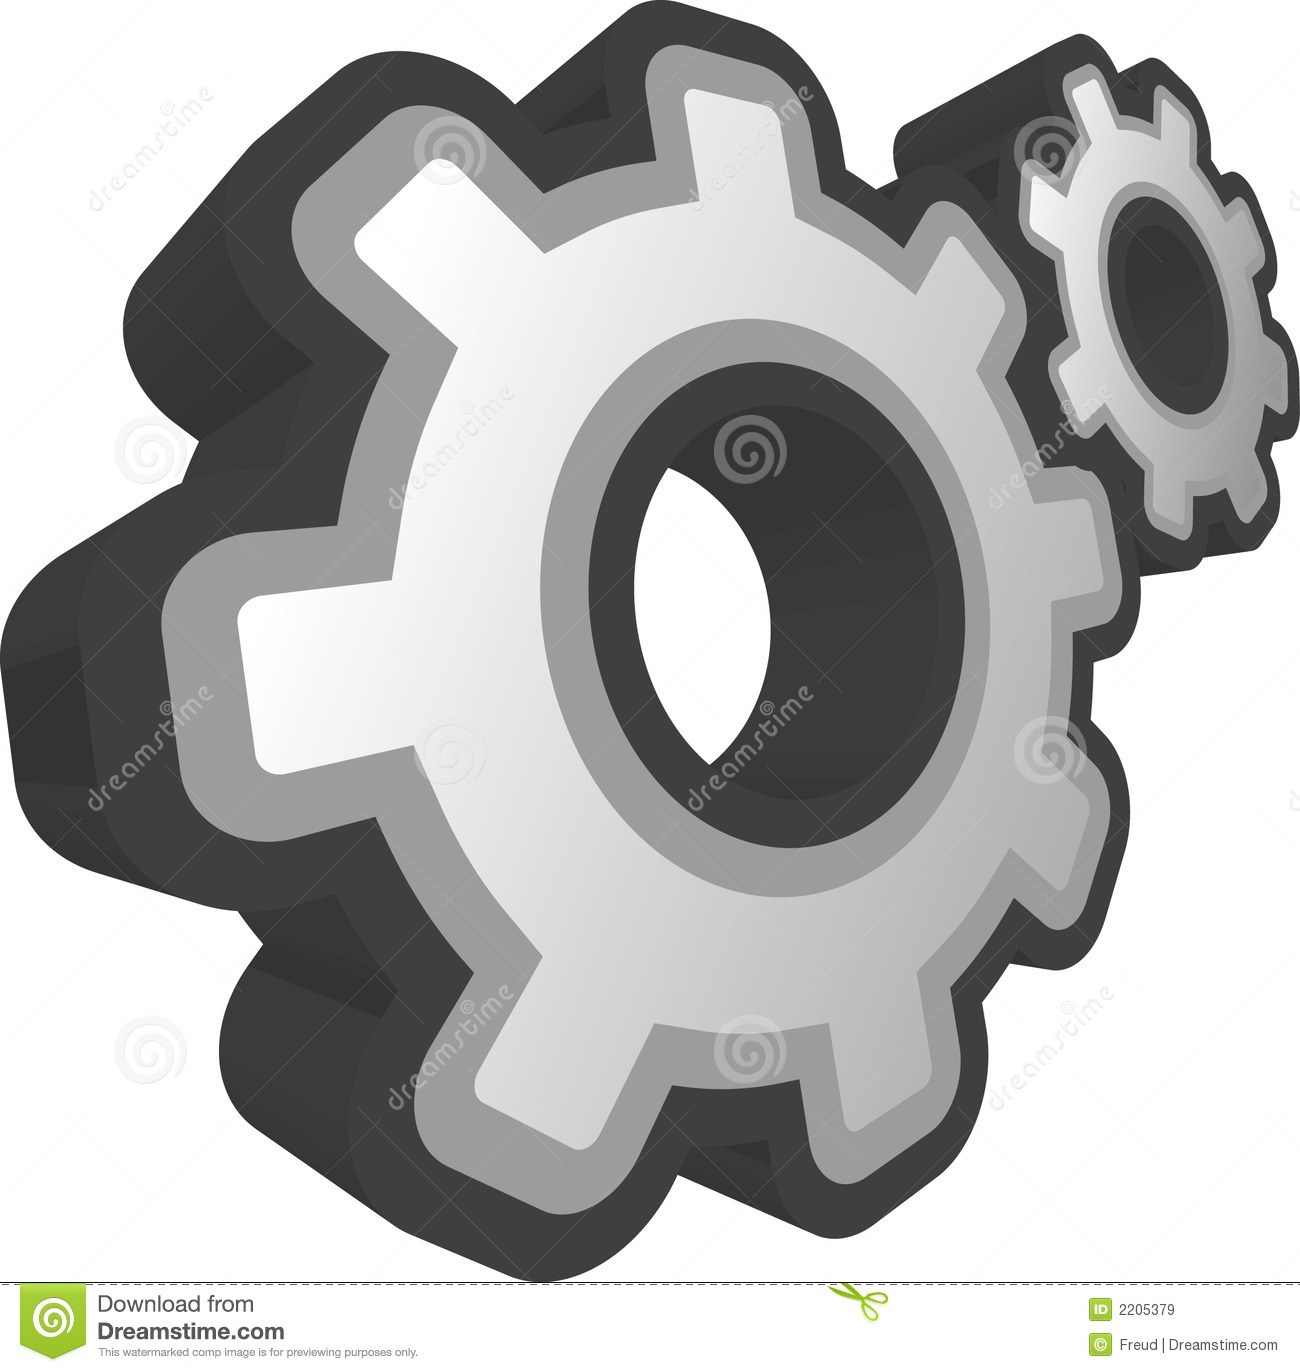 3d clipart 3 gears clip art library library 3d gear clipart 3 » Clipart Portal clip art library library